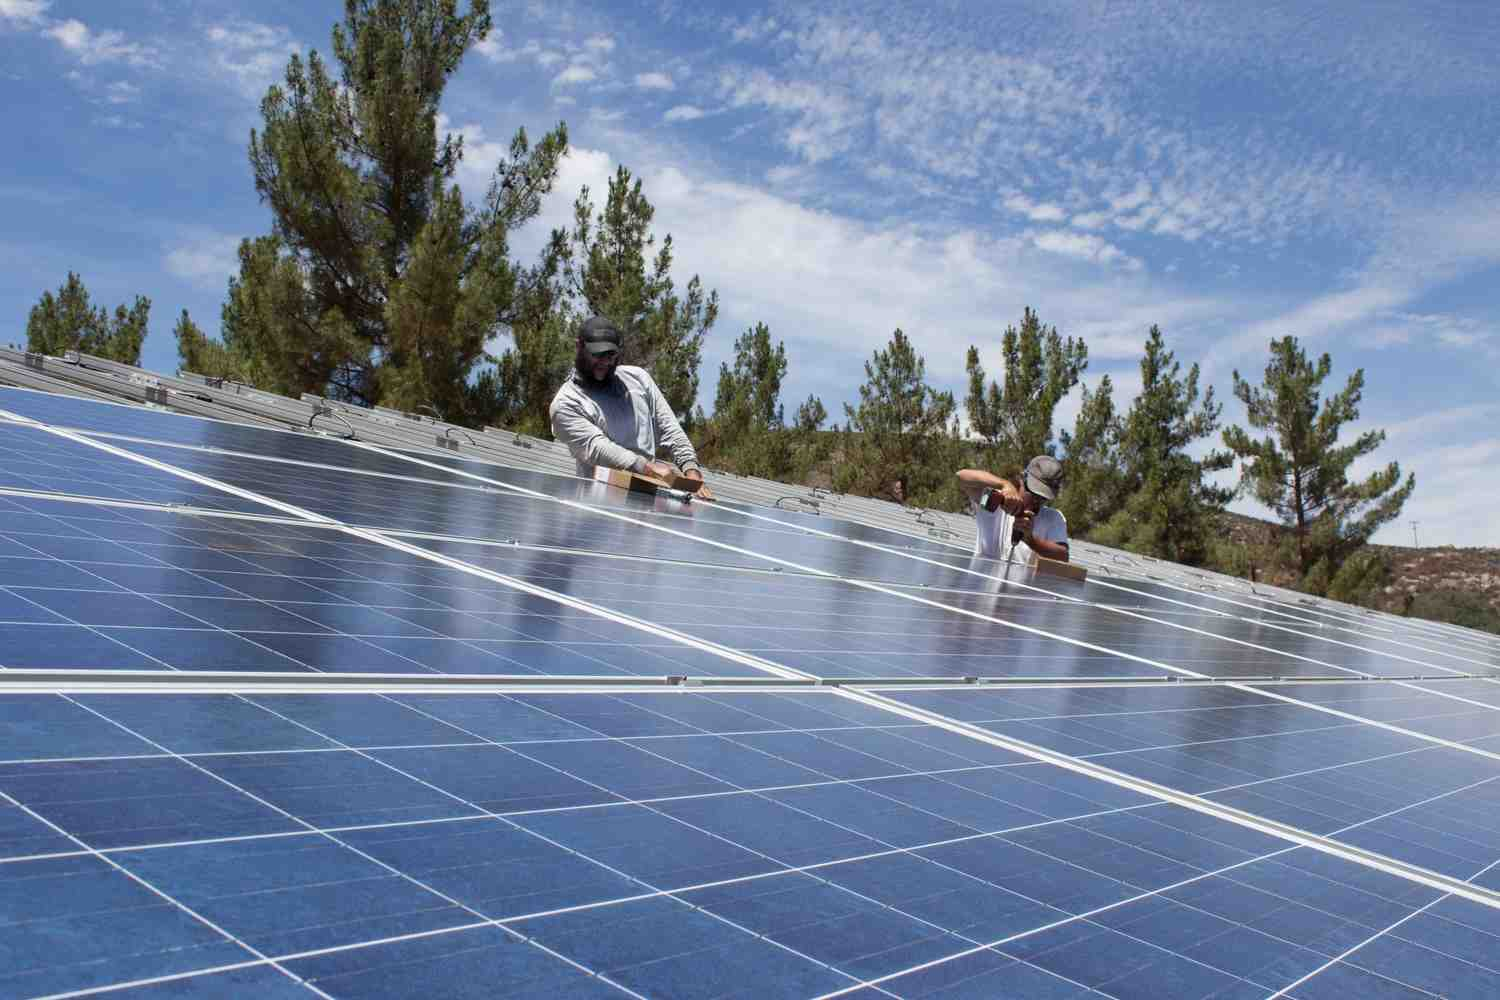 How much does it cost to install 8kW solar system?